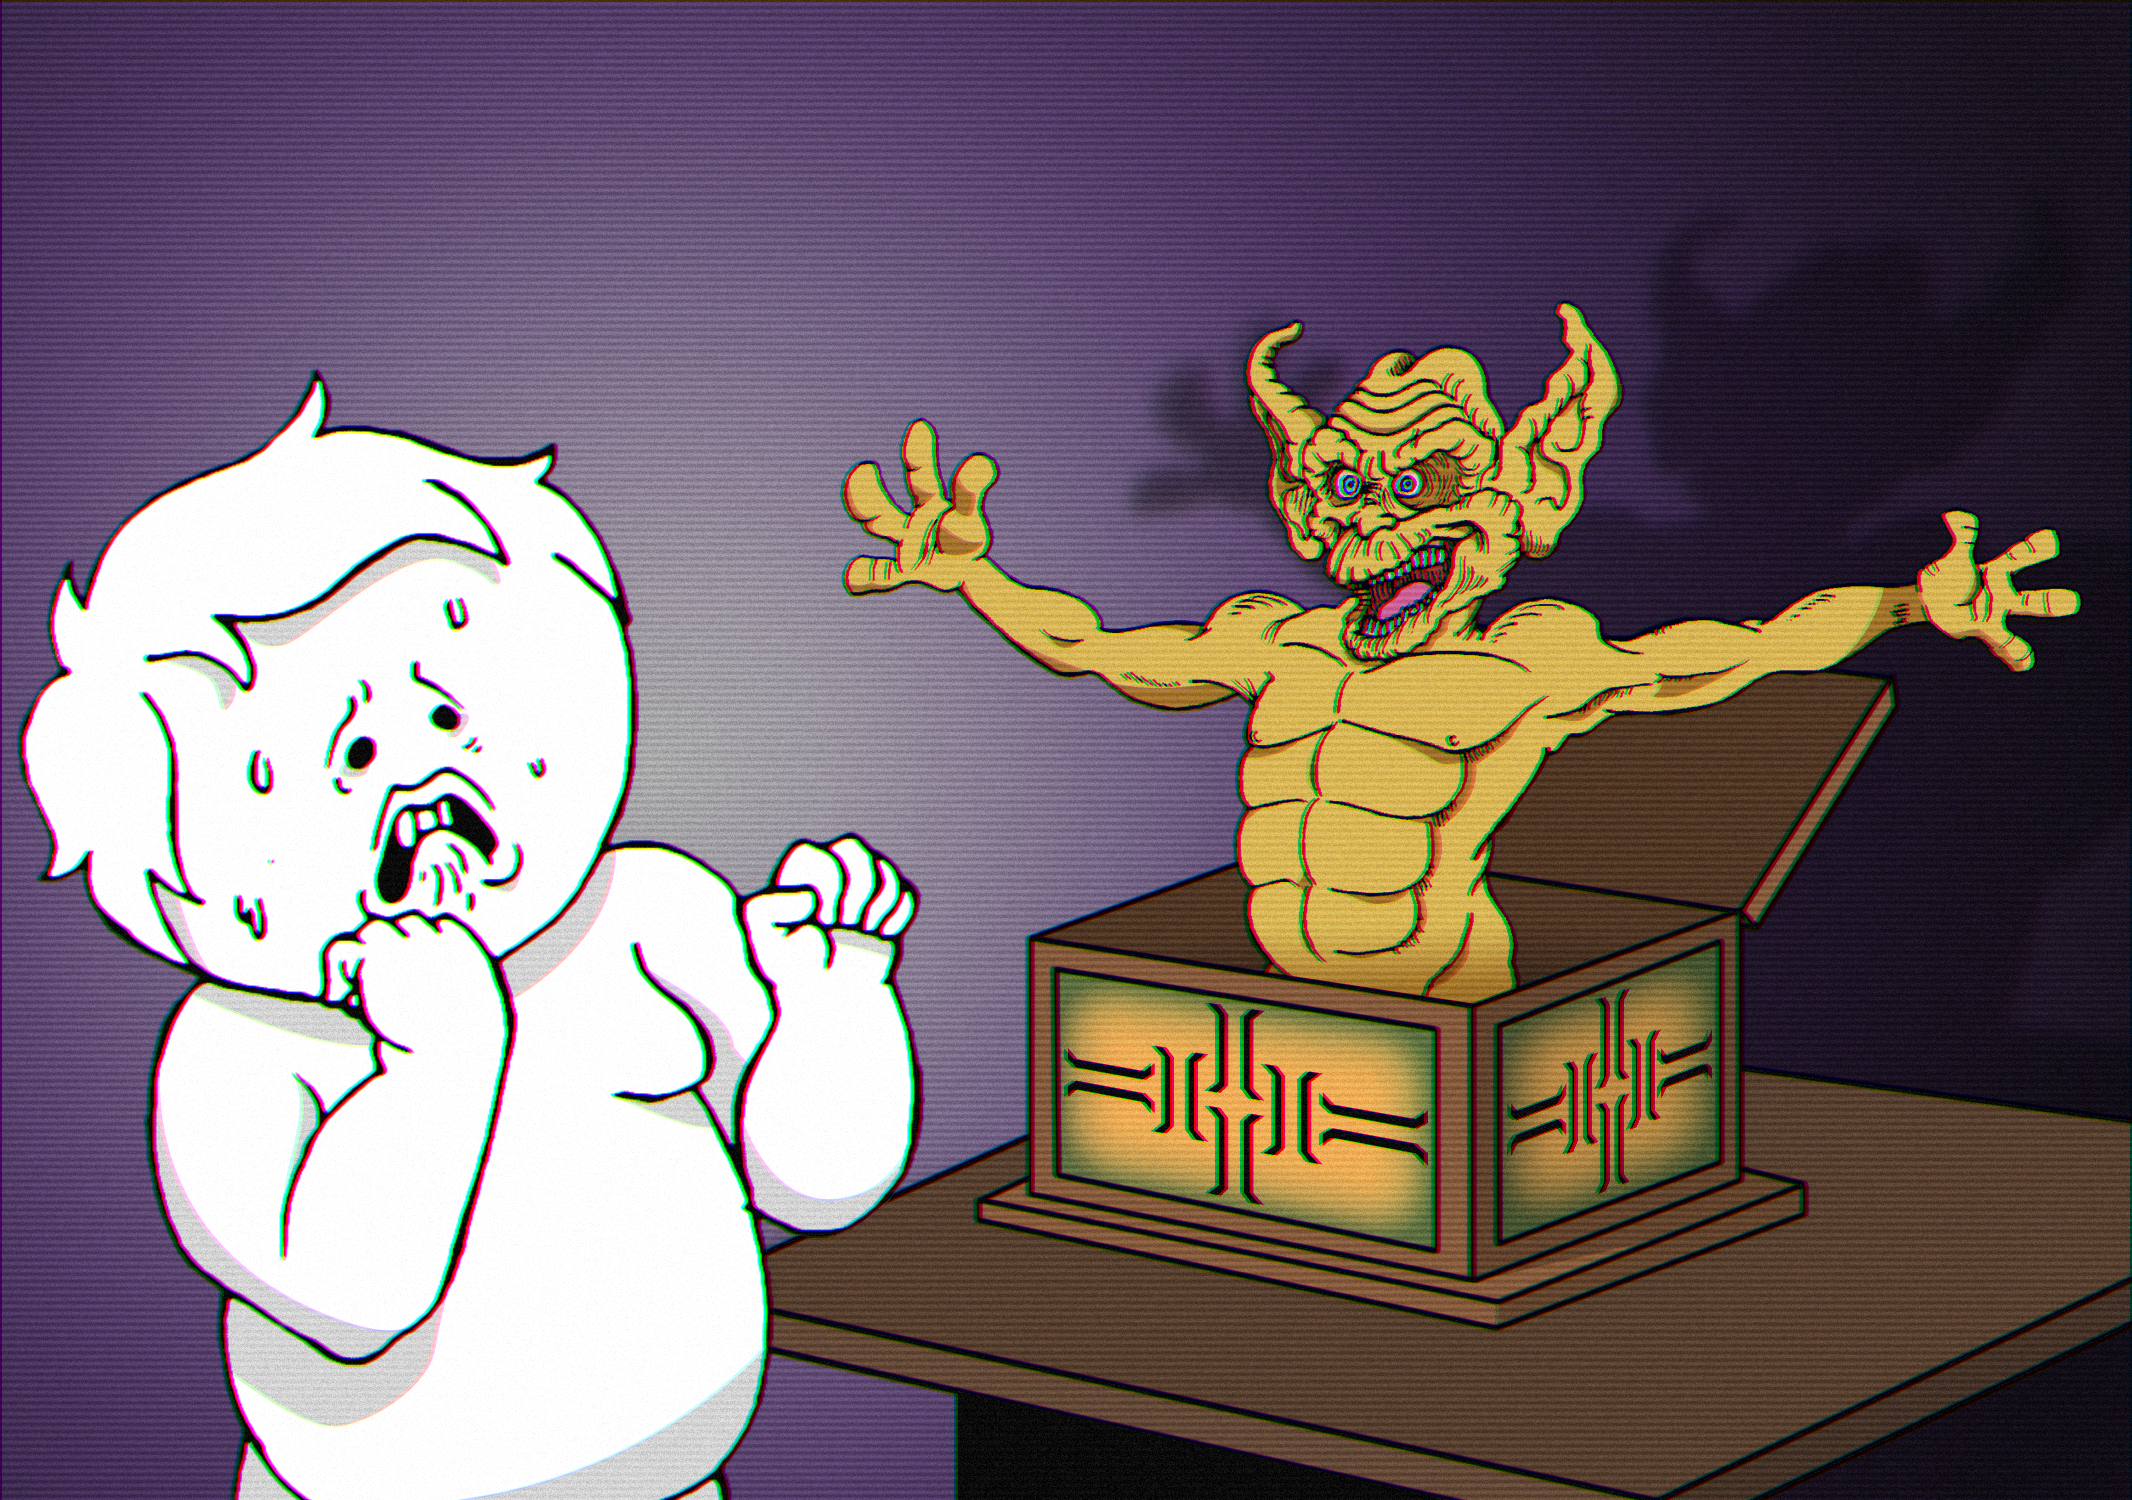 Oney, don't feed him after midnight.